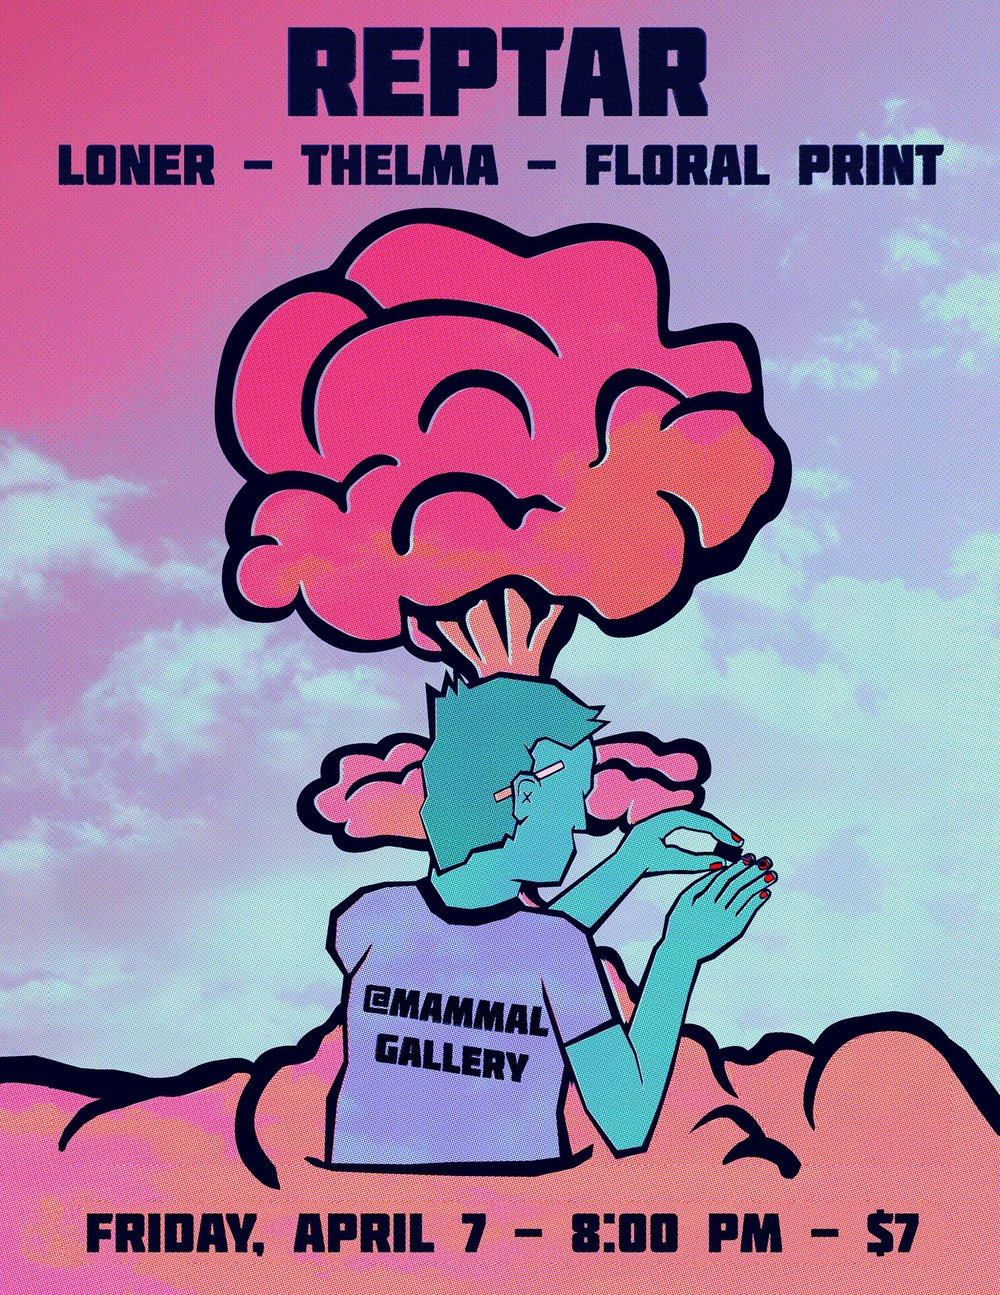 A hefty local lineup at The Mammal Gallery Friday night.